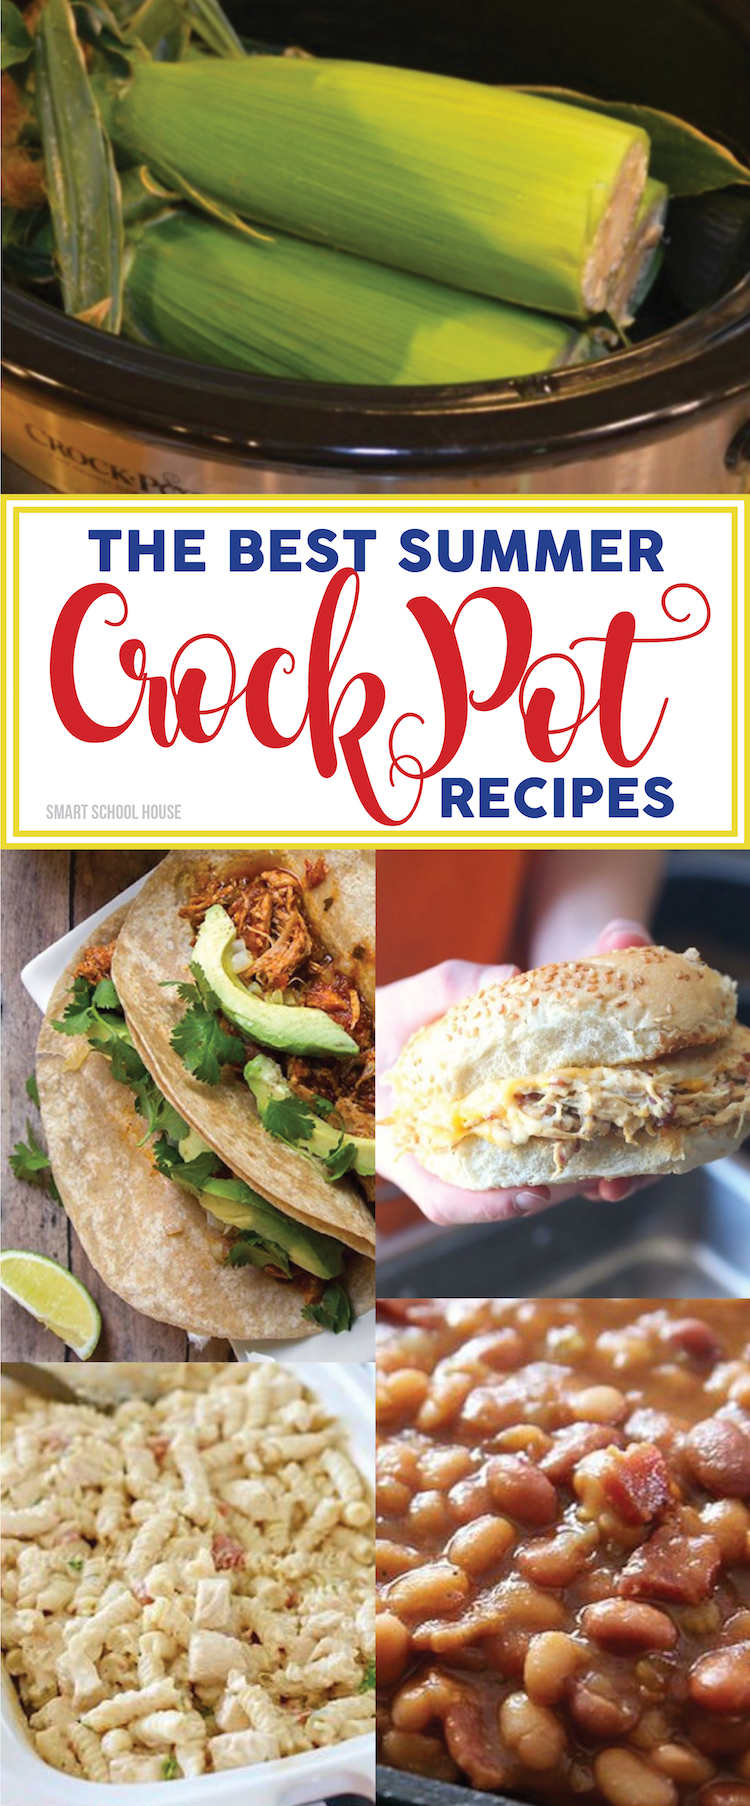 The BEST Summer Crock Pot Recipes! Crock pot corn on the cob, peach cobbler, pineapple chicken, chicken caesar sandwiches, and more! Summer slow cooker recipe ideas.